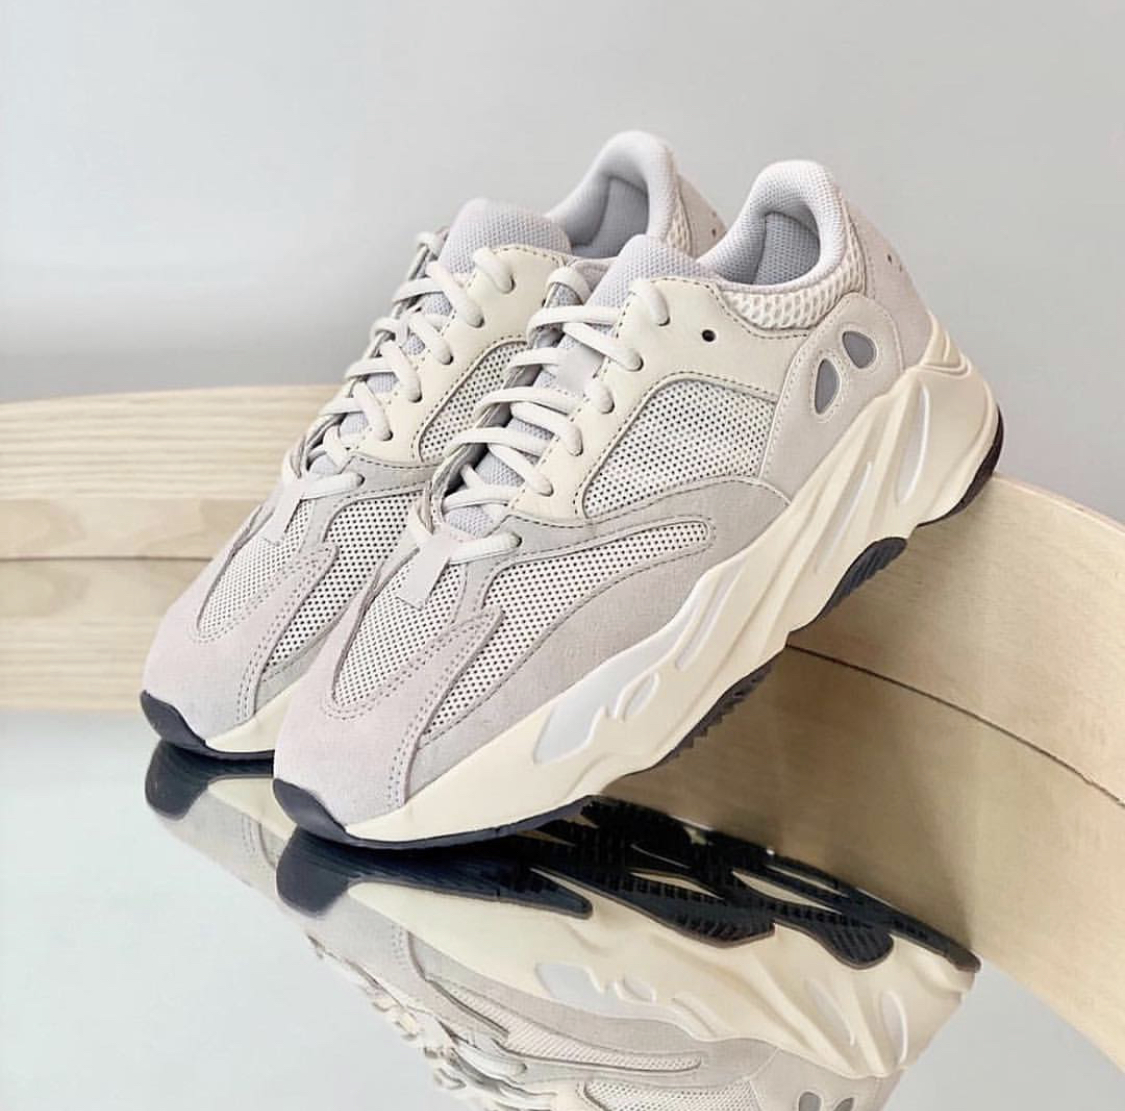 newest 9e8e0 bd002 On Sale: adidas Yeezy 700